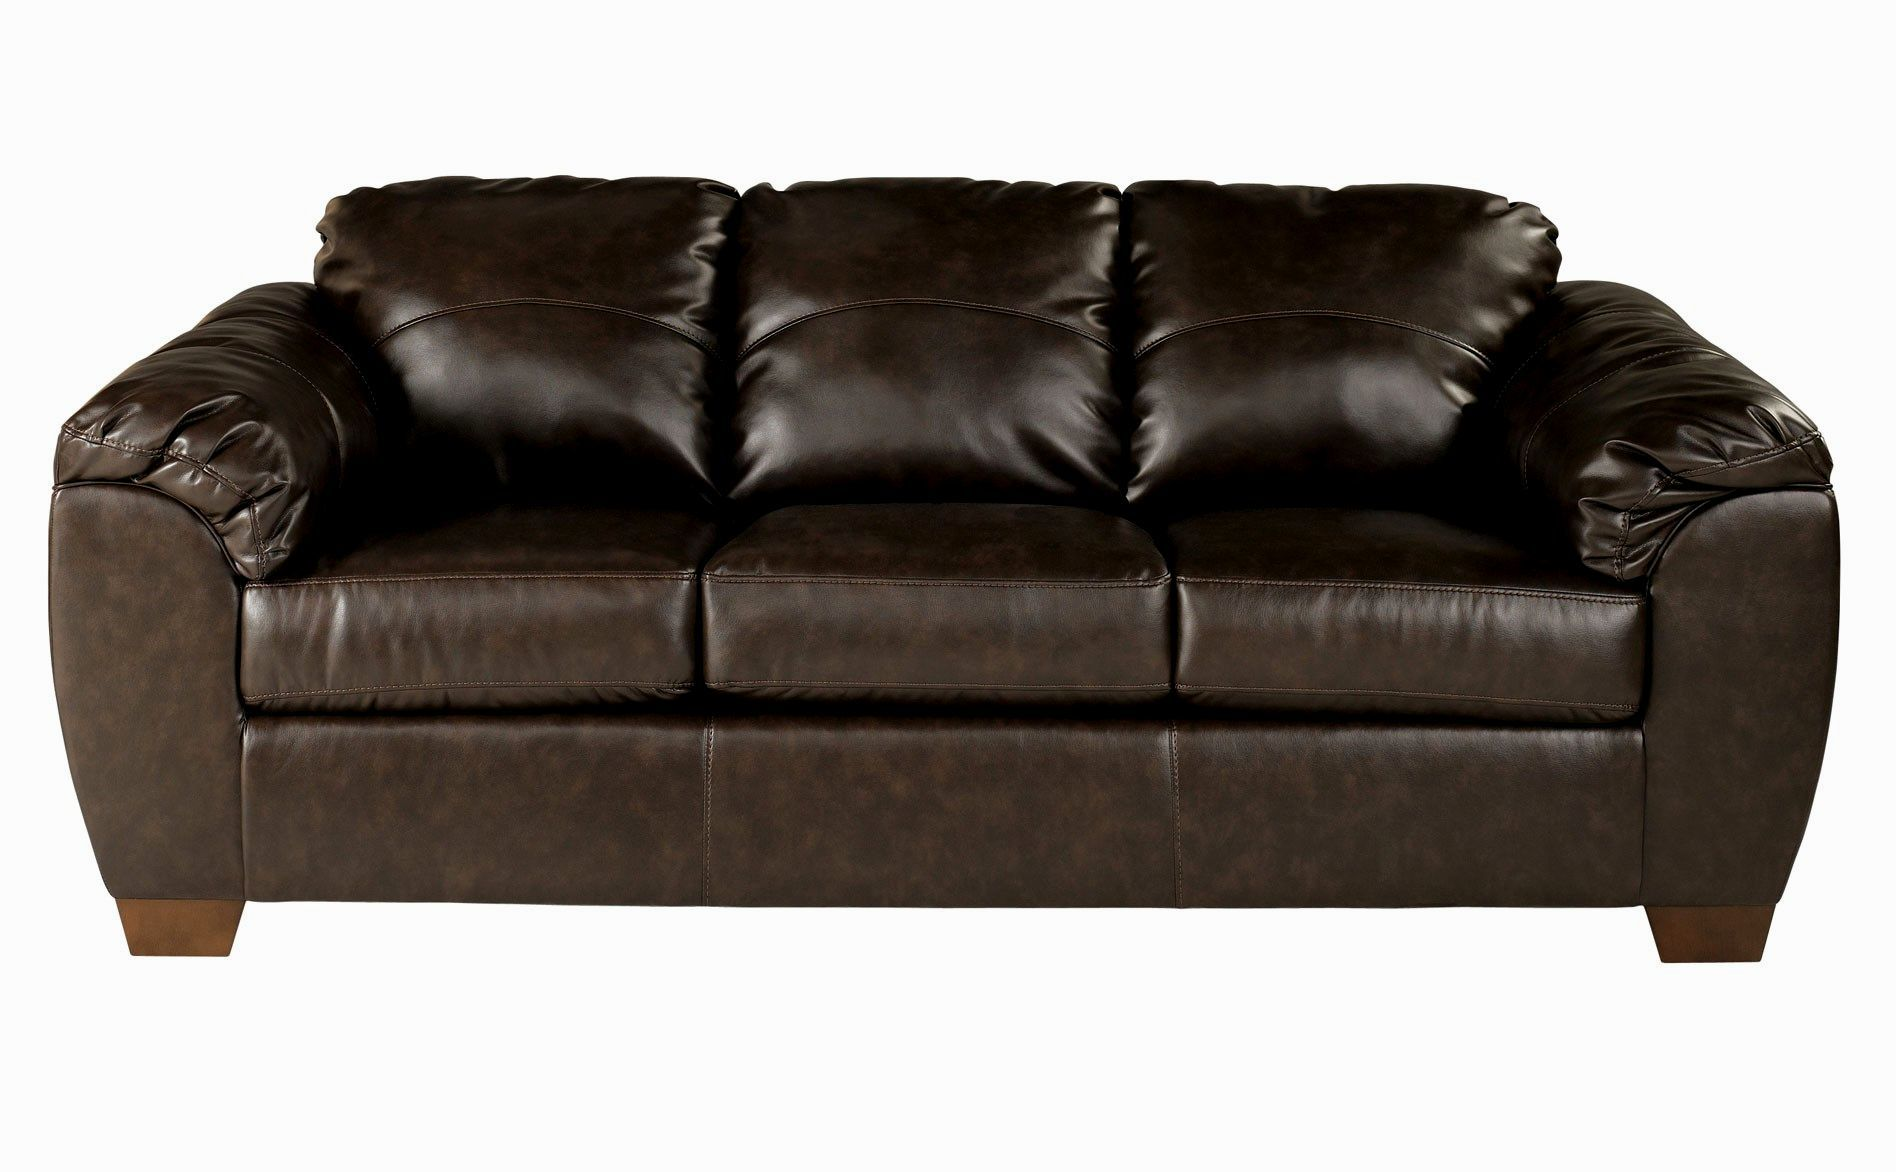 luxury loveseat sleeper sofa ikea image-Cute Loveseat Sleeper sofa Ikea Wallpaper